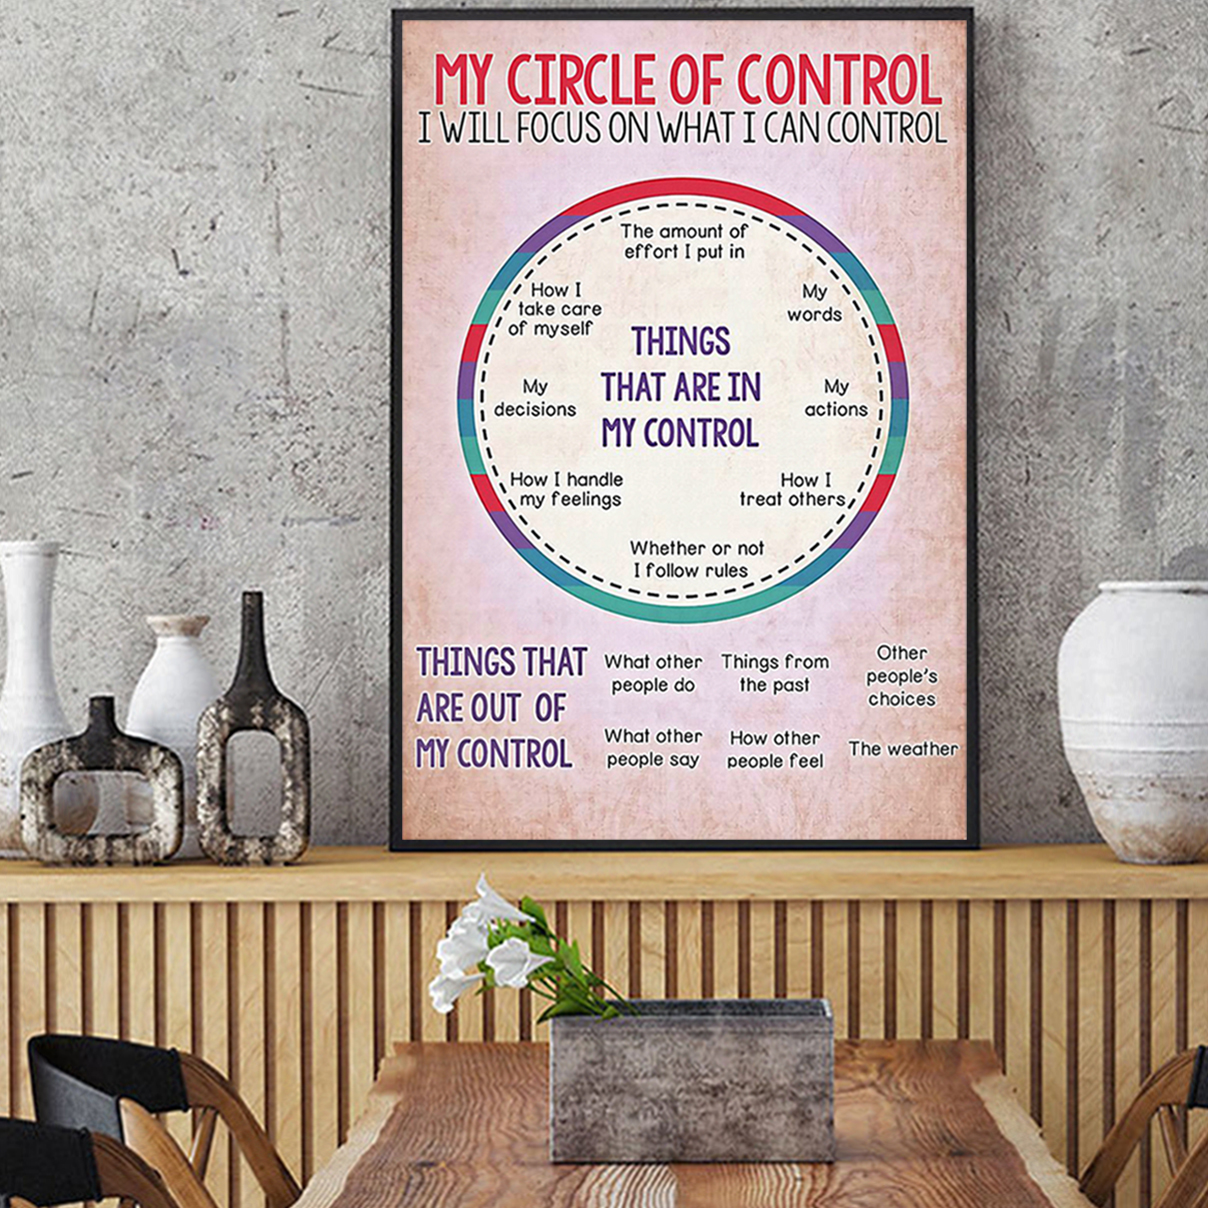 Occupational therapist my circle of control poster A2